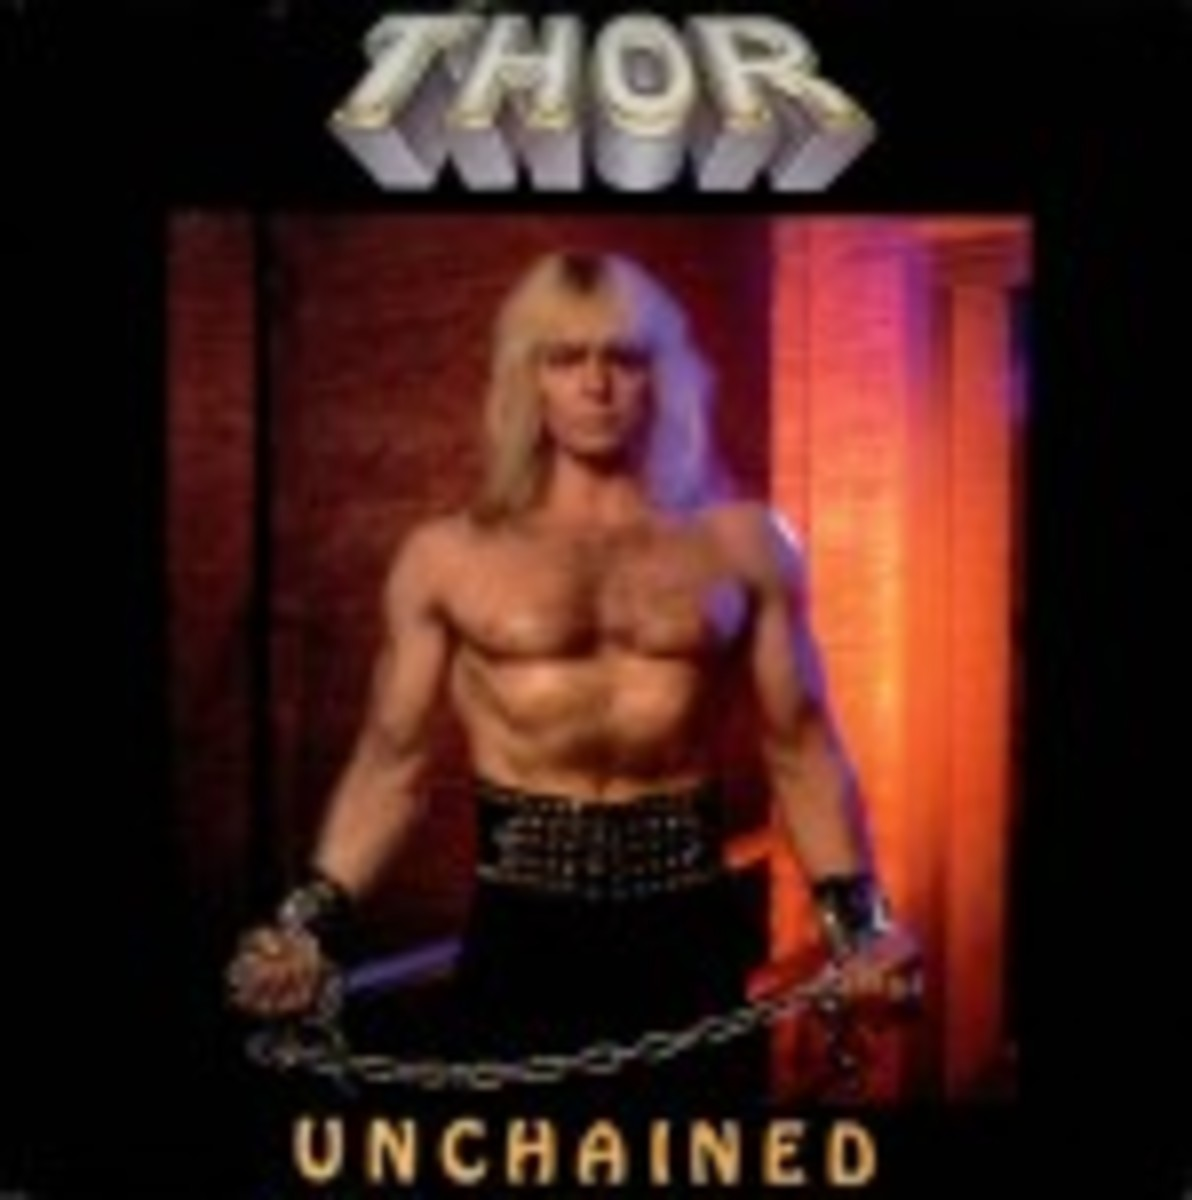 Thor-Unchained-479775